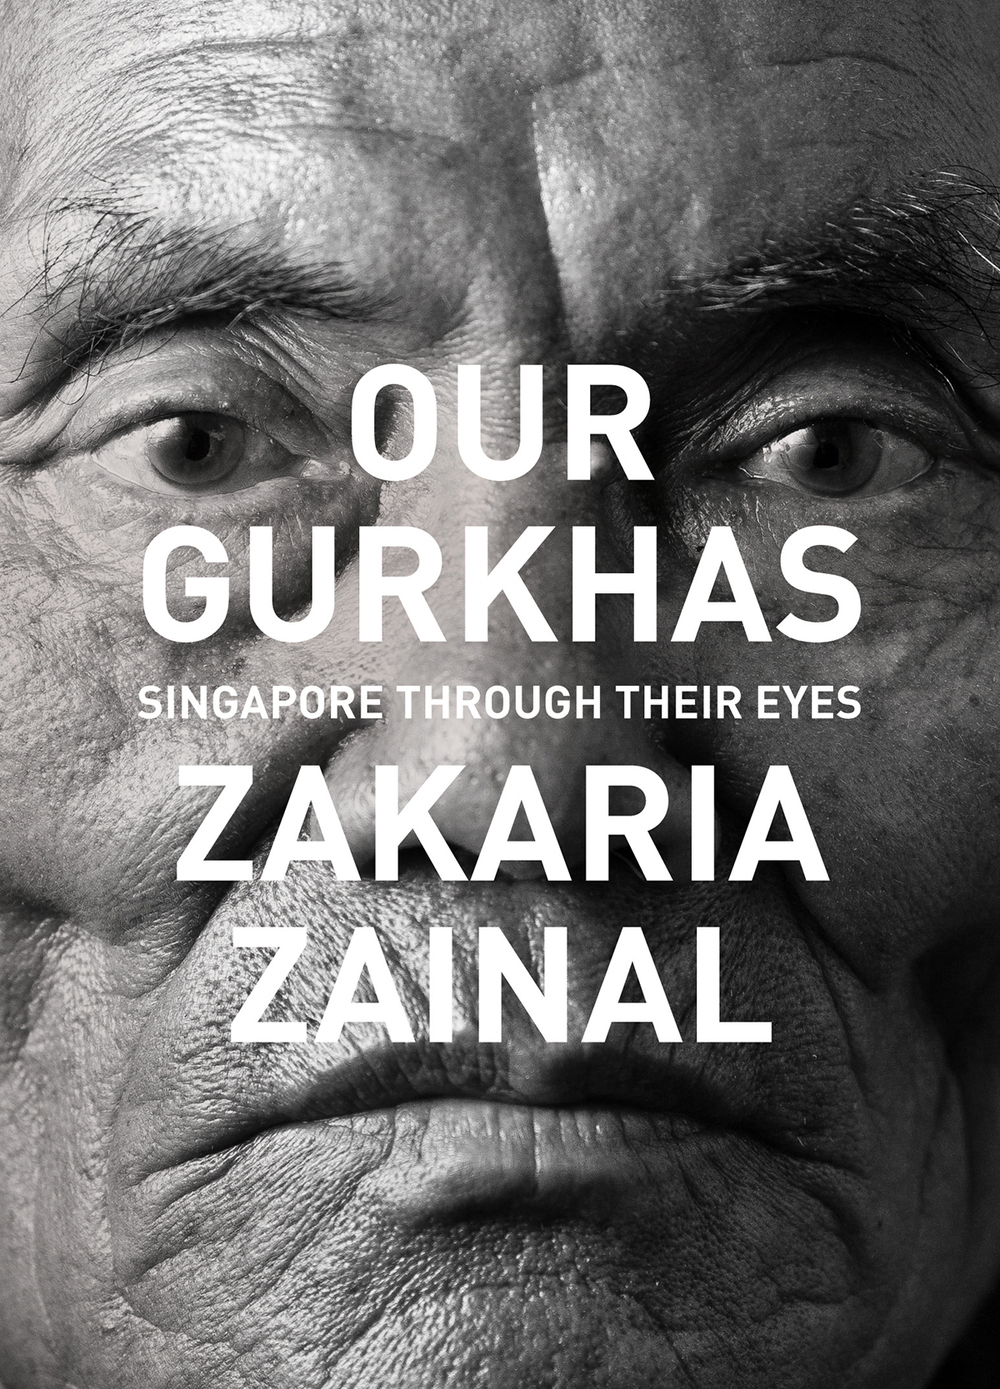 gurkhas-book-cover-high-res.jpg